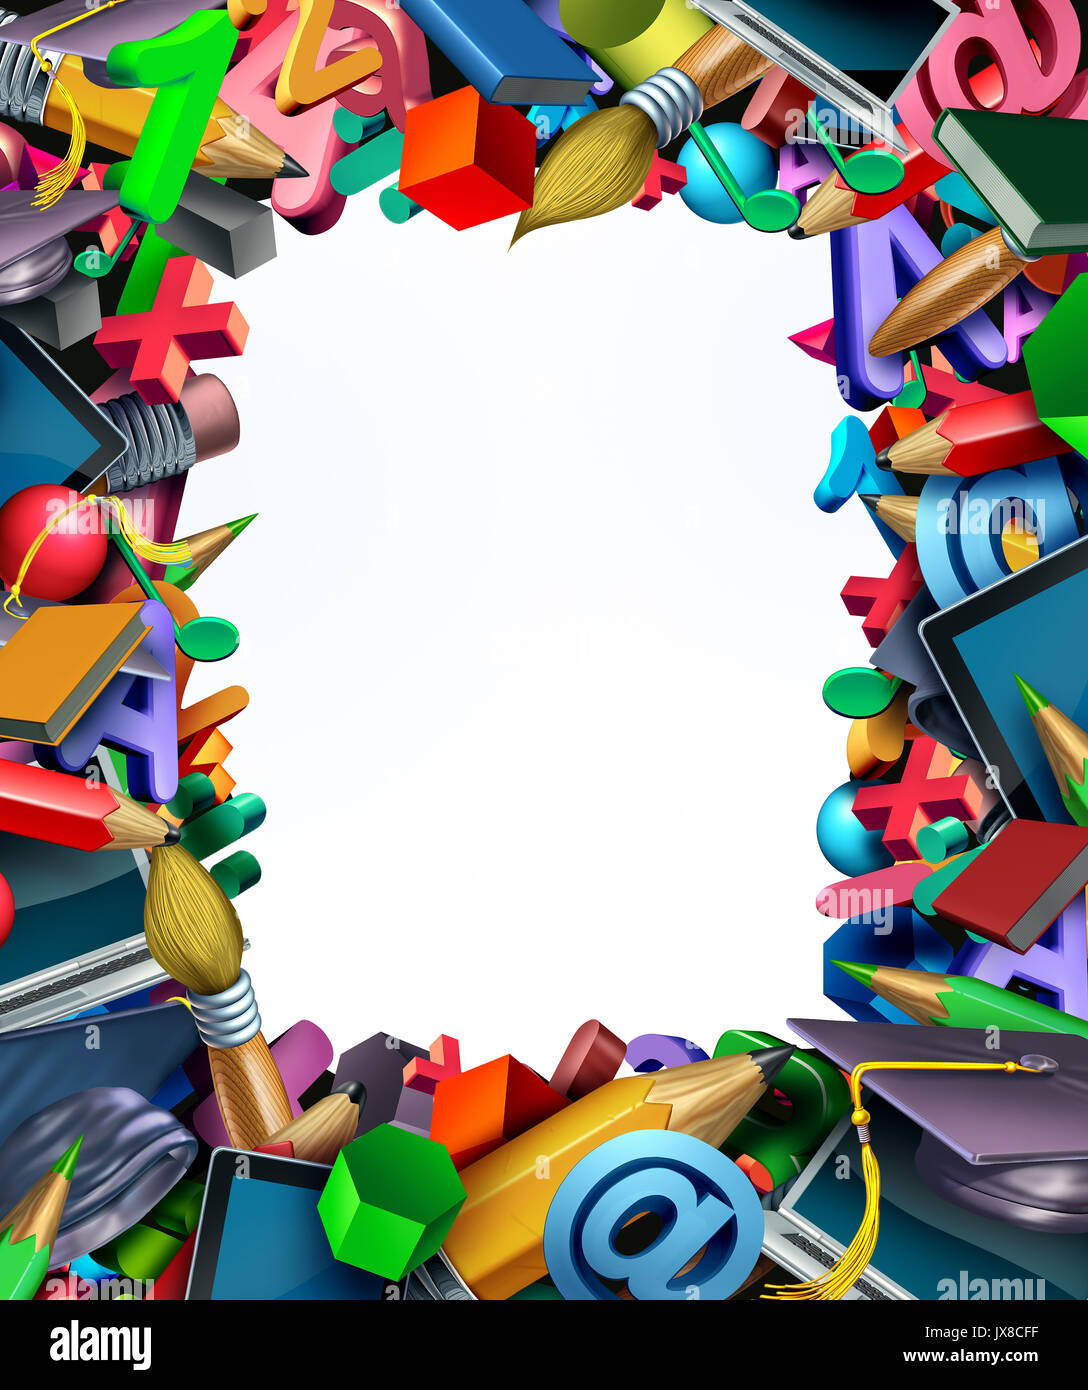 school supplies frame border background and learning tools